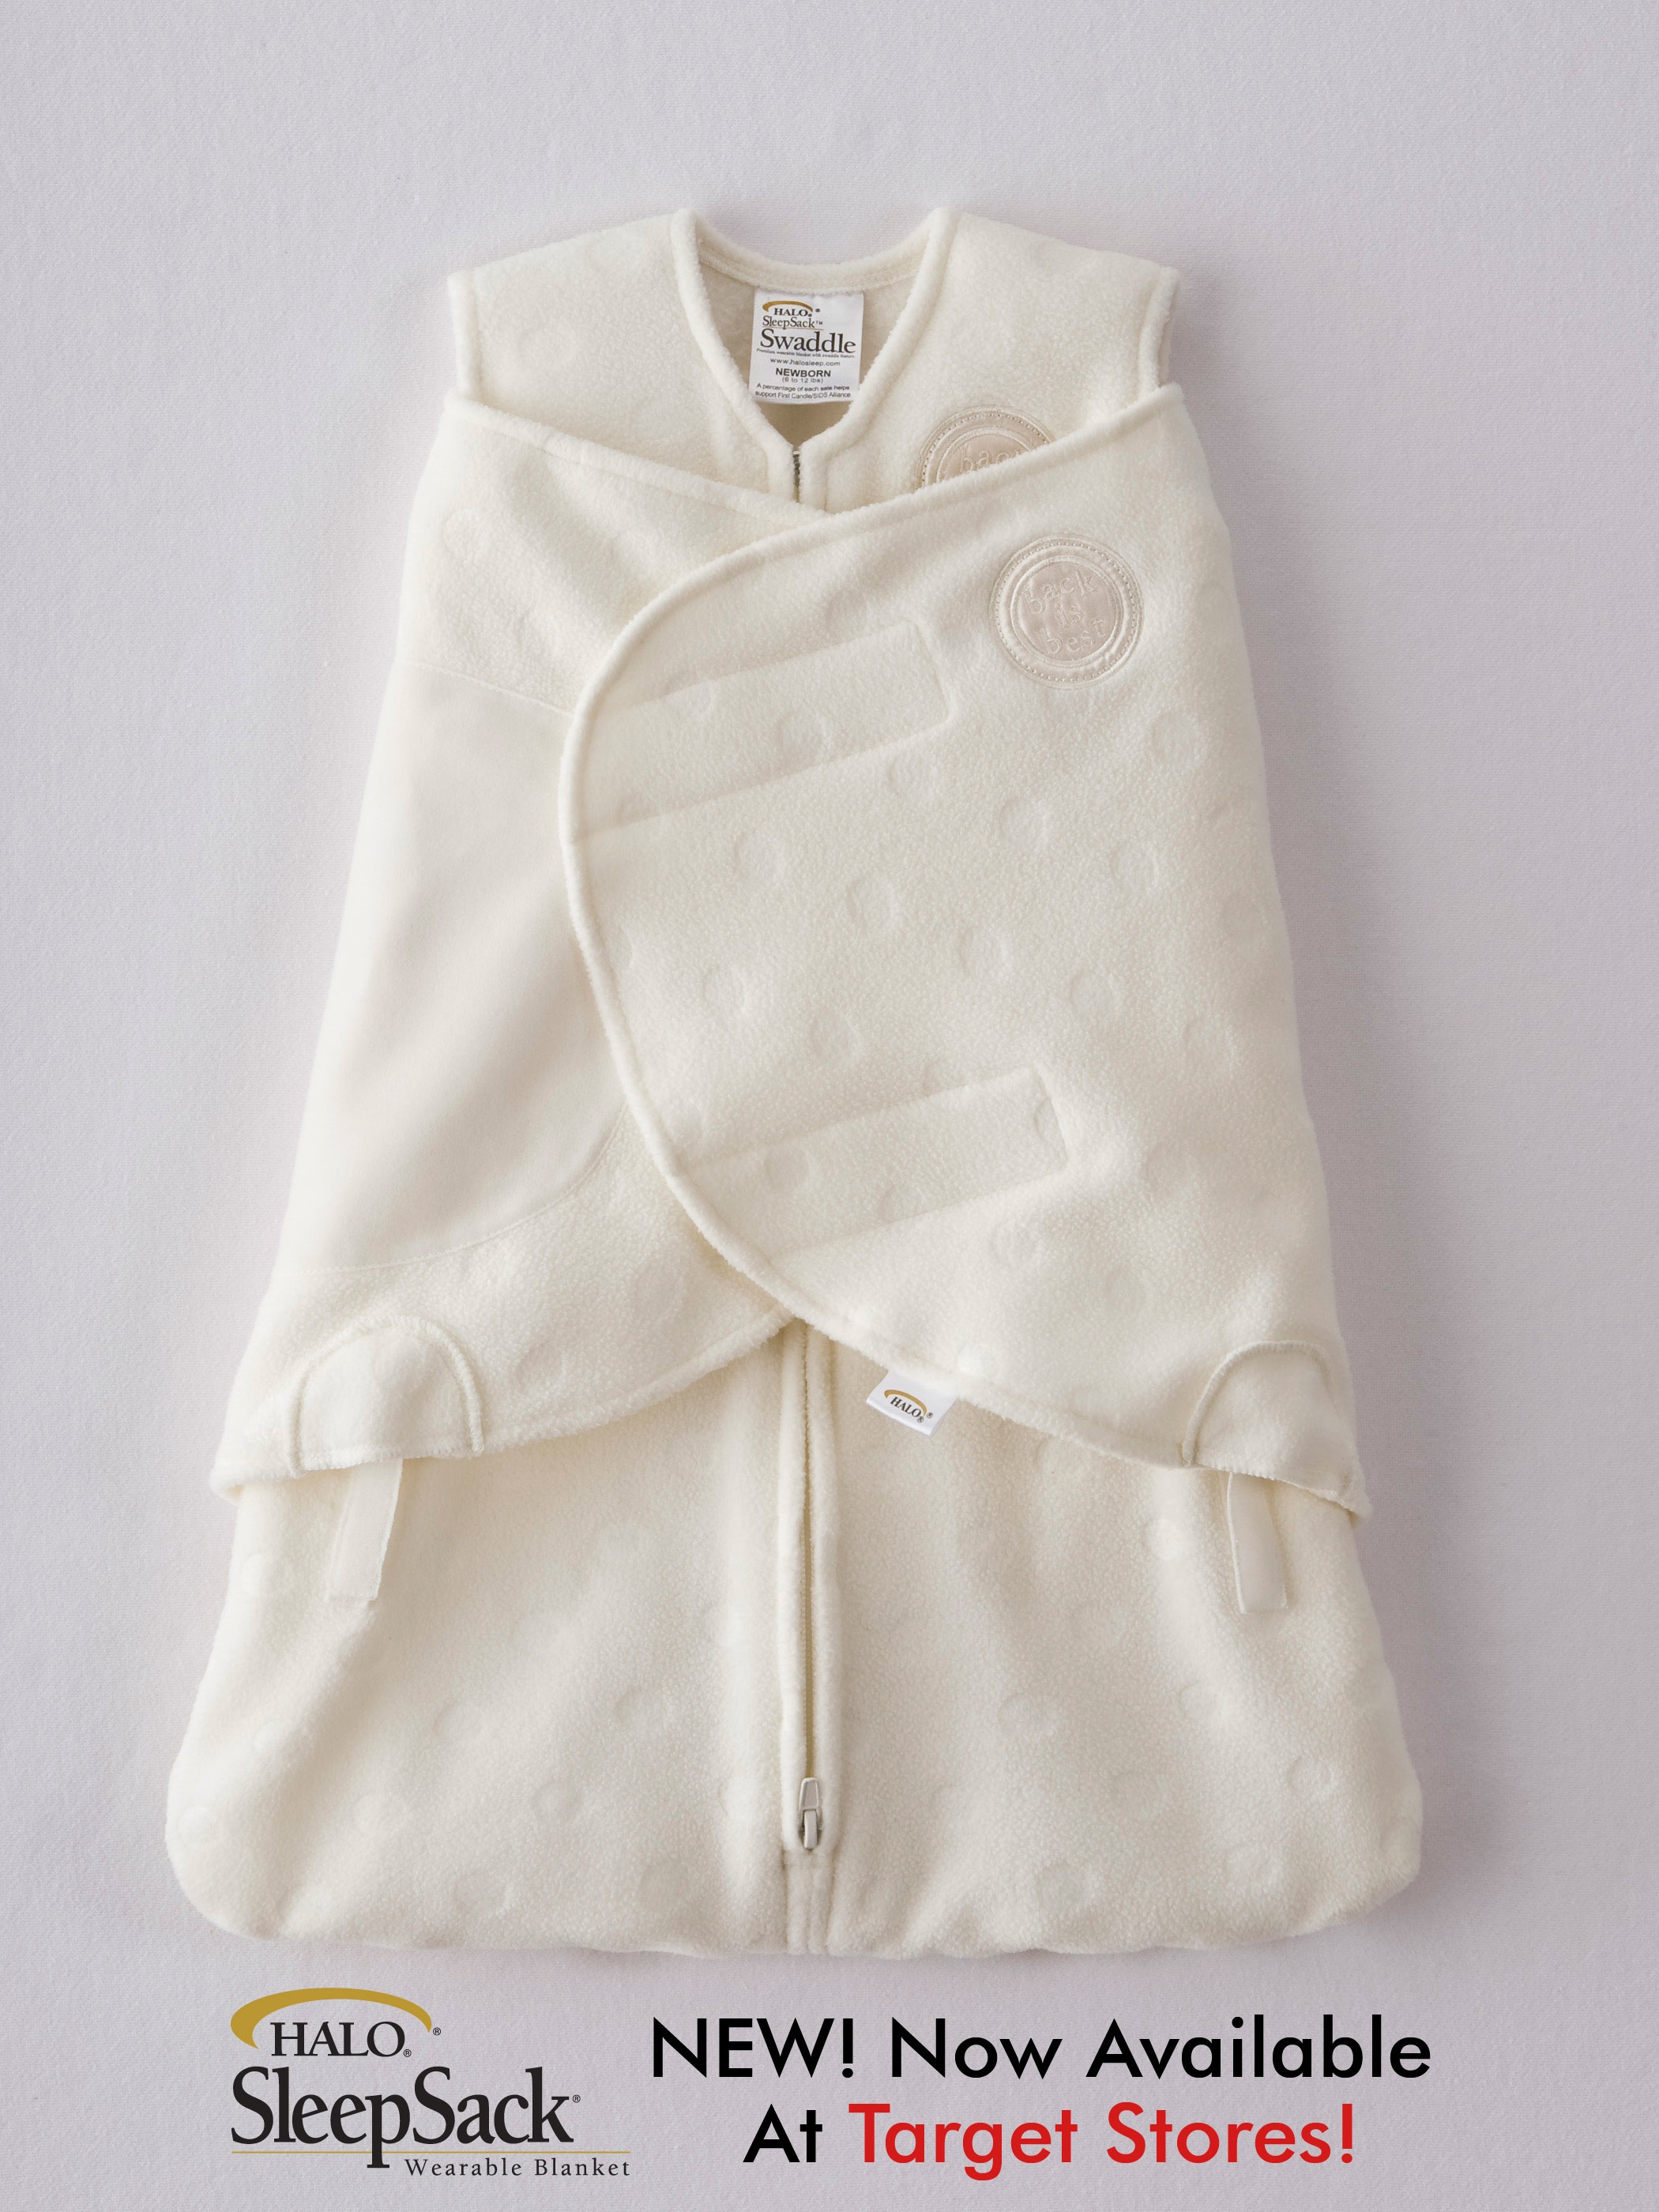 Halo Sleep Sack Review Giveaway Mommies With Cents